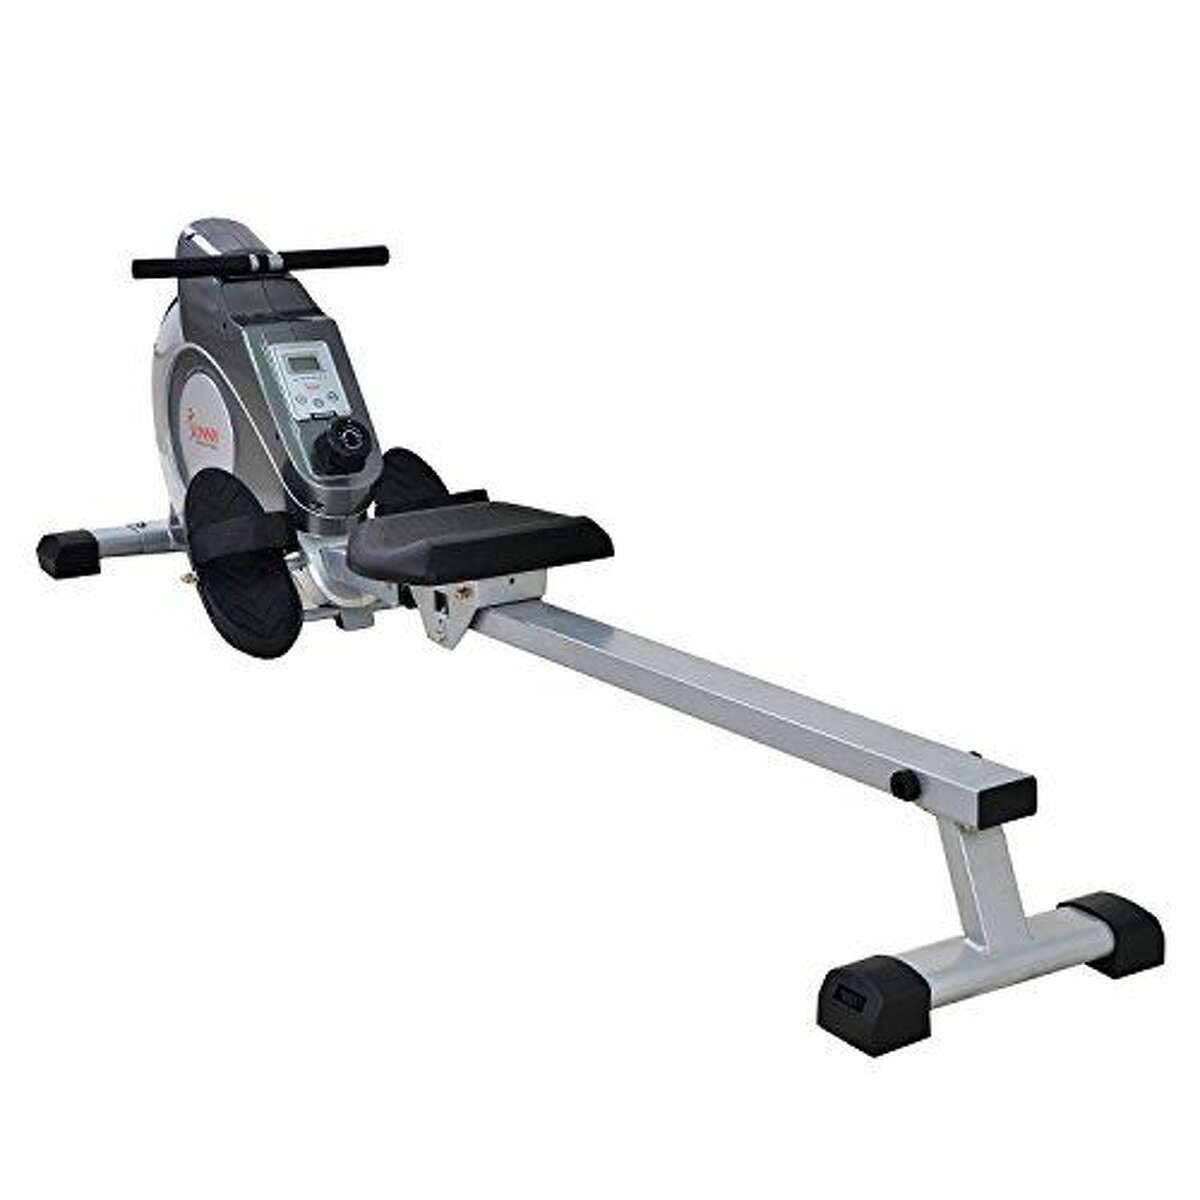 2) Magnetic Rowing Machine with LCD Monitor: $207.00 SHOP NOW 4.4 out of 5 stars4,500+ Amazon customer reviews OK, so you're just not sold on a four-figure machine. You won't get the personalized training built into fancier options, but this model has all the essentials needed for a powerful at-home rowing workout. Because it uses a magnetic tension system (featuring eight levels of resistance), this rowing machine is nice 'n' quiet. It also comes with a large LCD console that displays your meters rowed, calorie count, and time. And the fully padded seat, no-slip foot pedals, and handlebars make it comfortable to row so you can go the distance.